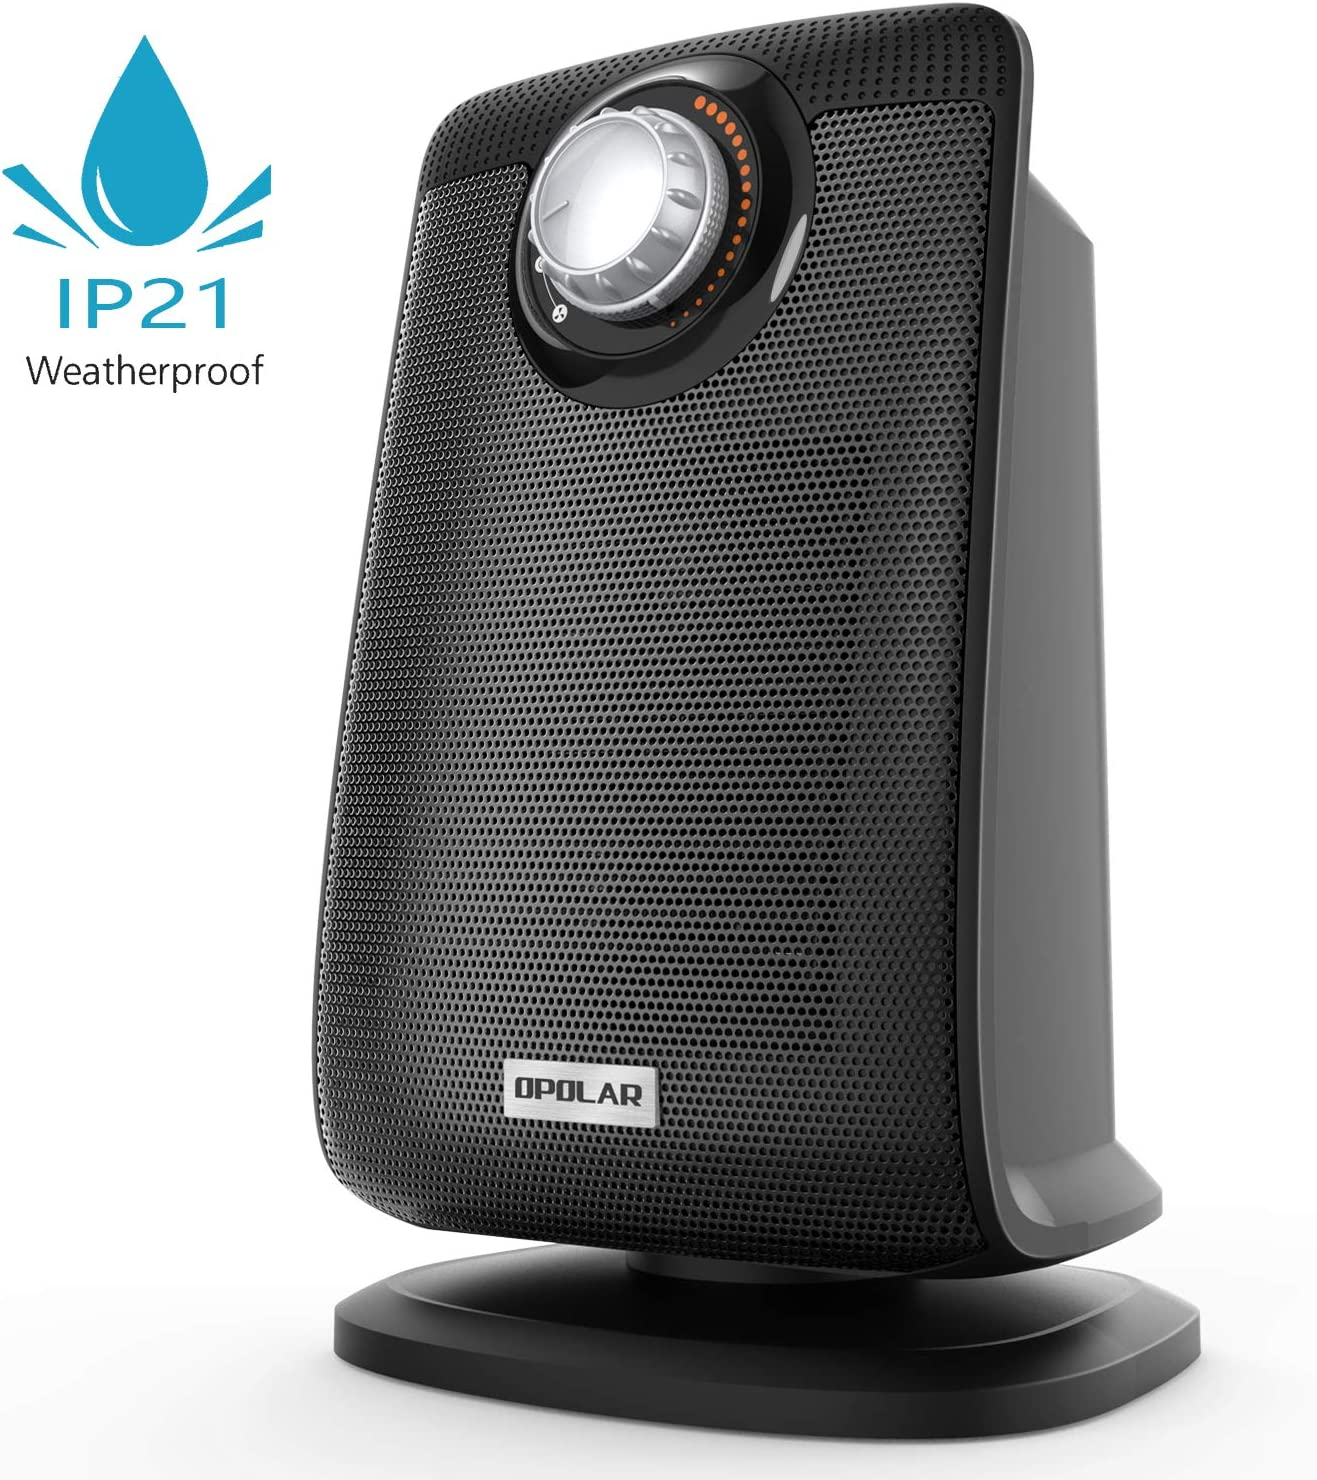 Oscillating Bathroom Space Heater with IP21 Waterproof, 1500W Portable Ceramic Safe Heater with Adjustable Thermostat, Fast Heating, Ideal for Living Room Bedroom Office Washroom Use